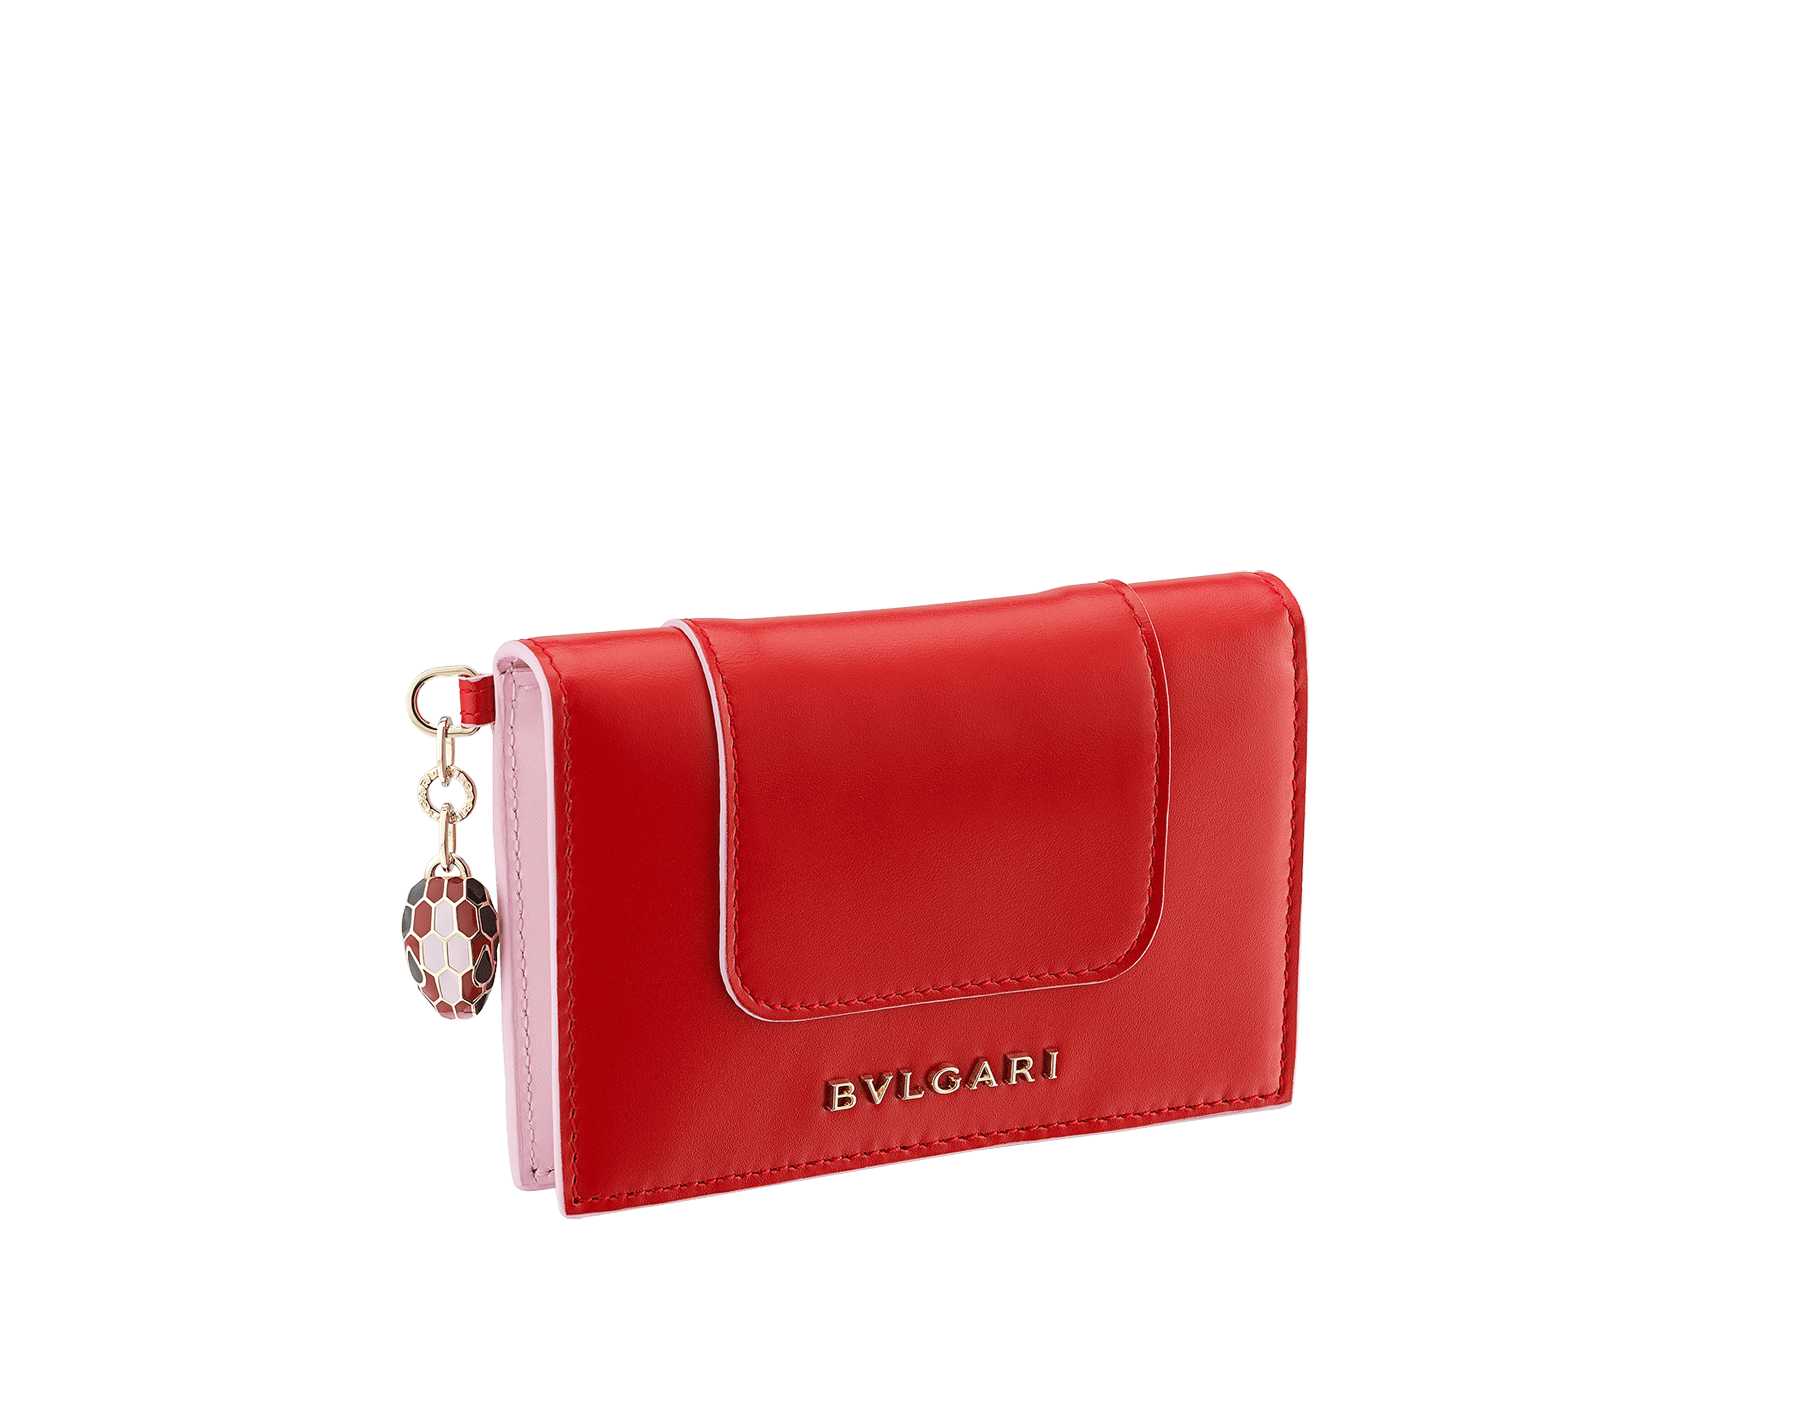 Serpenti Forever Celebration Edition folded credit card holder in carmine jasper and rosa di Francia calf leather. Snakehead charm with black, carmine jasper and rosa di Francia enamel, and black enamel eyes. 289553 image 1